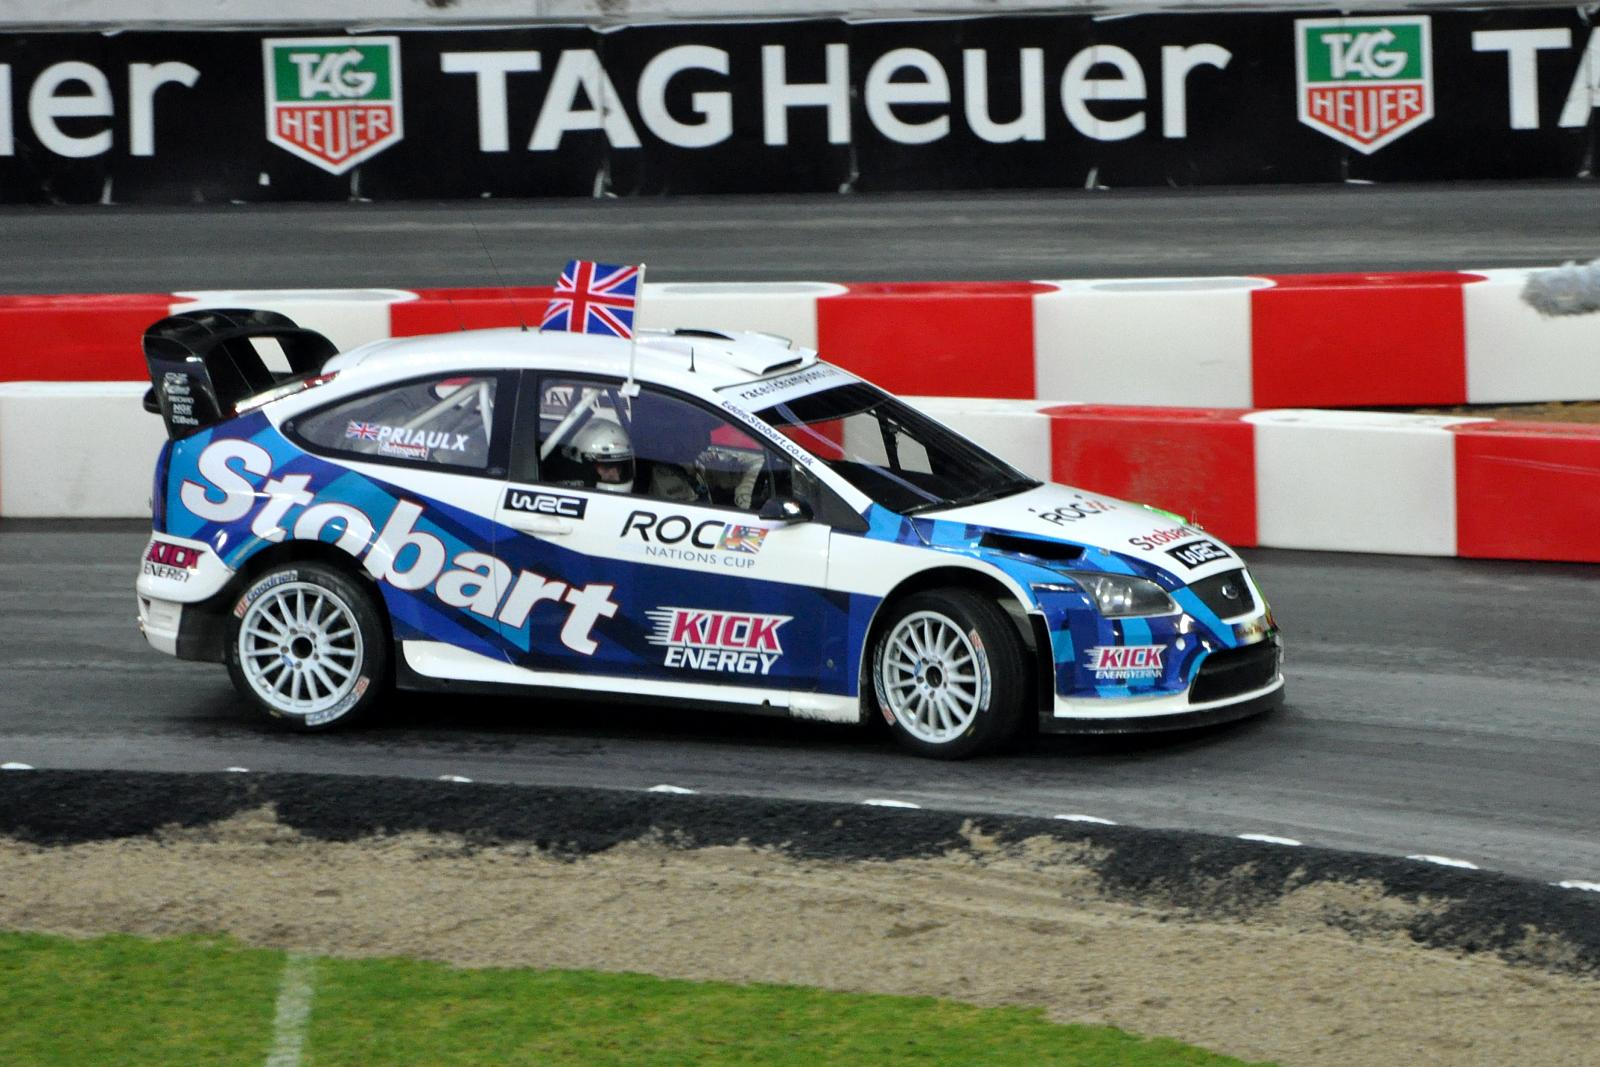 Ford Focus Wikipedia File:Andy Priaulx Stobart WRC Ford Focus 2008 Race Of ...